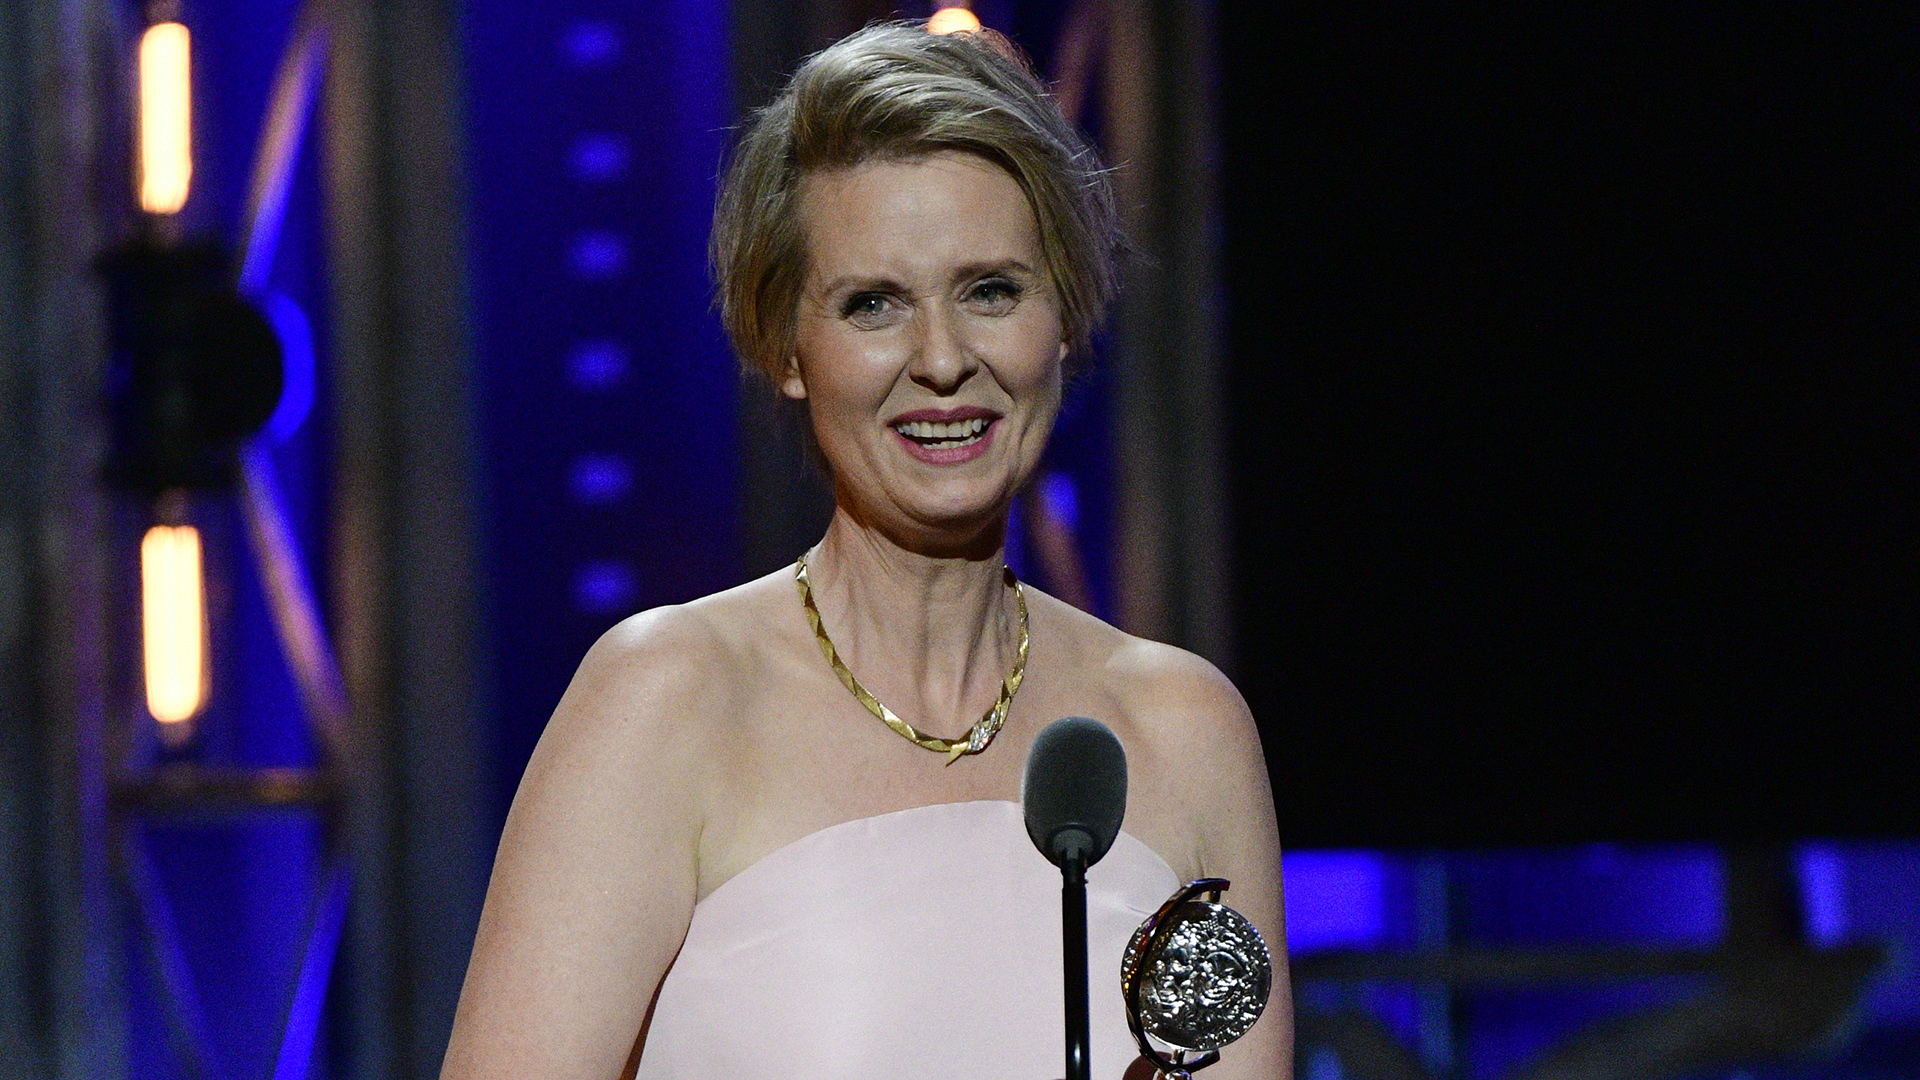 Cynthia Nixon wins the 71st Annual Tony Award for Best Performance by an Actress in a Featured Role in a Play